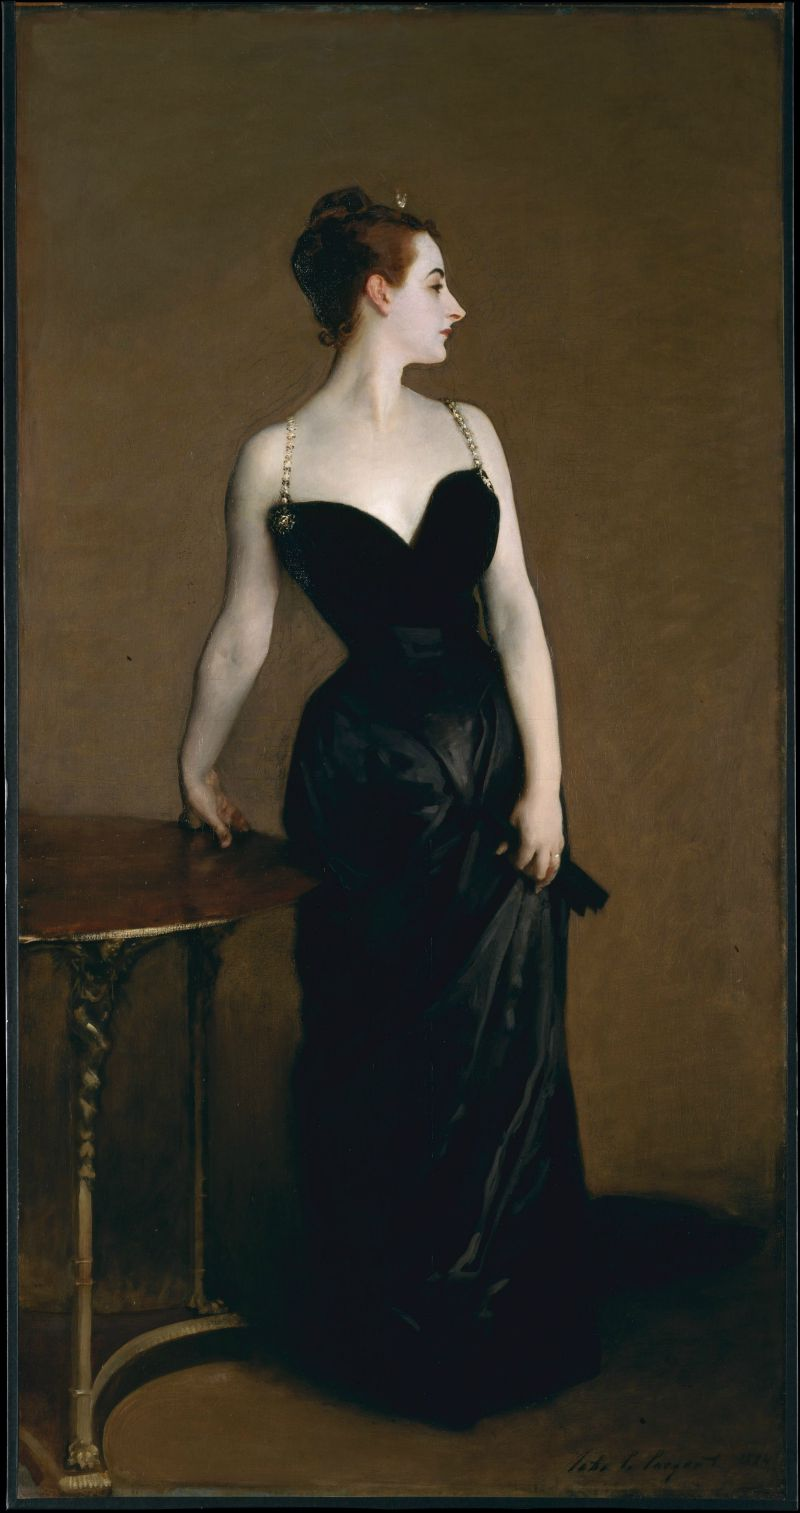 Portrait of Madame X by John Singer Sargent (1856 – 1925)